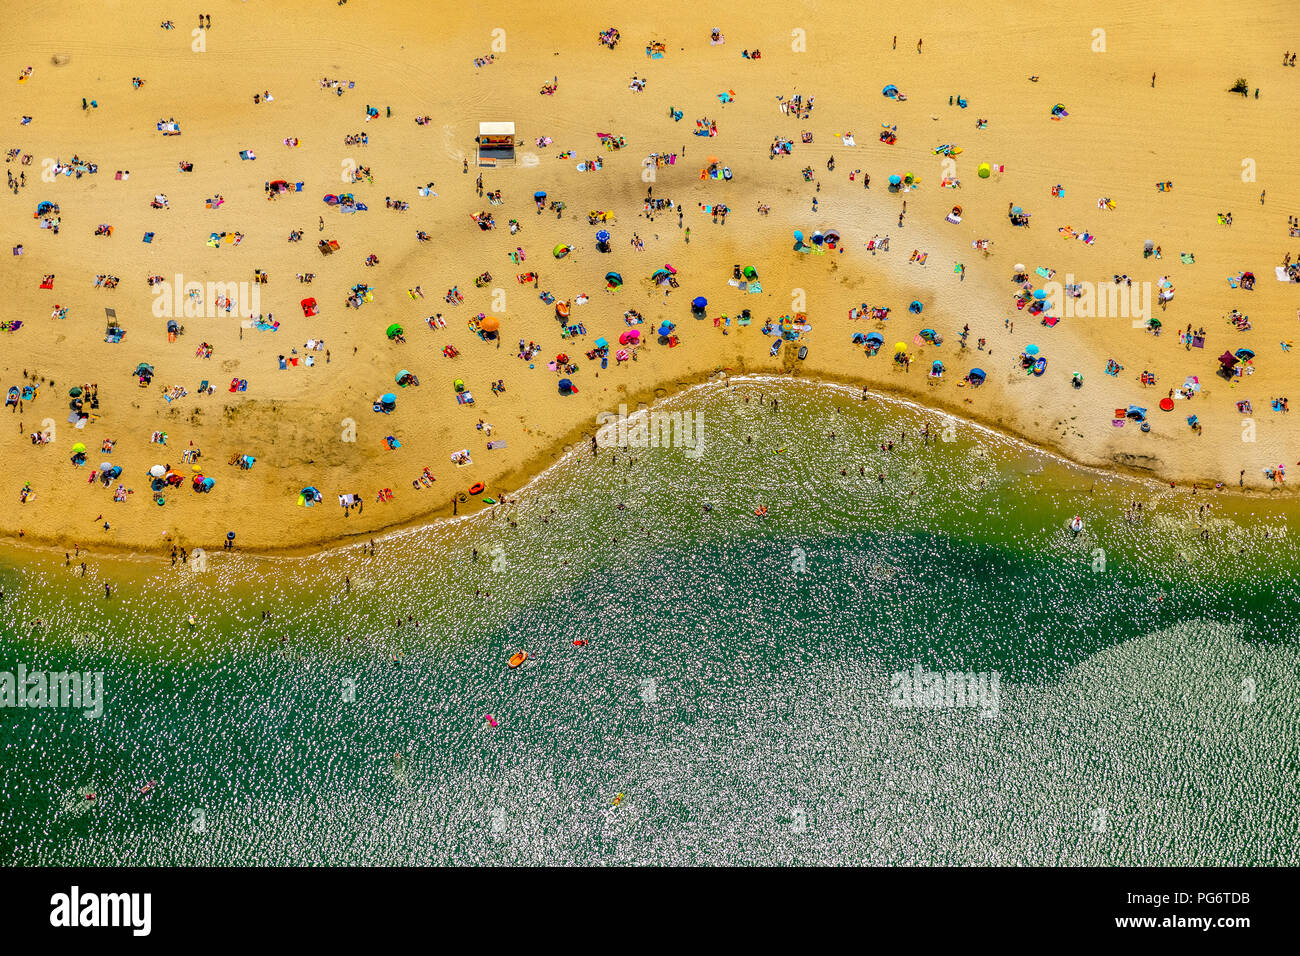 most popular beach of the Ruhr area is located at Silver Lake II in Haltern am See, sand and water, Caribbean feeling, lido, turquoise water, bathers, - Stock Image